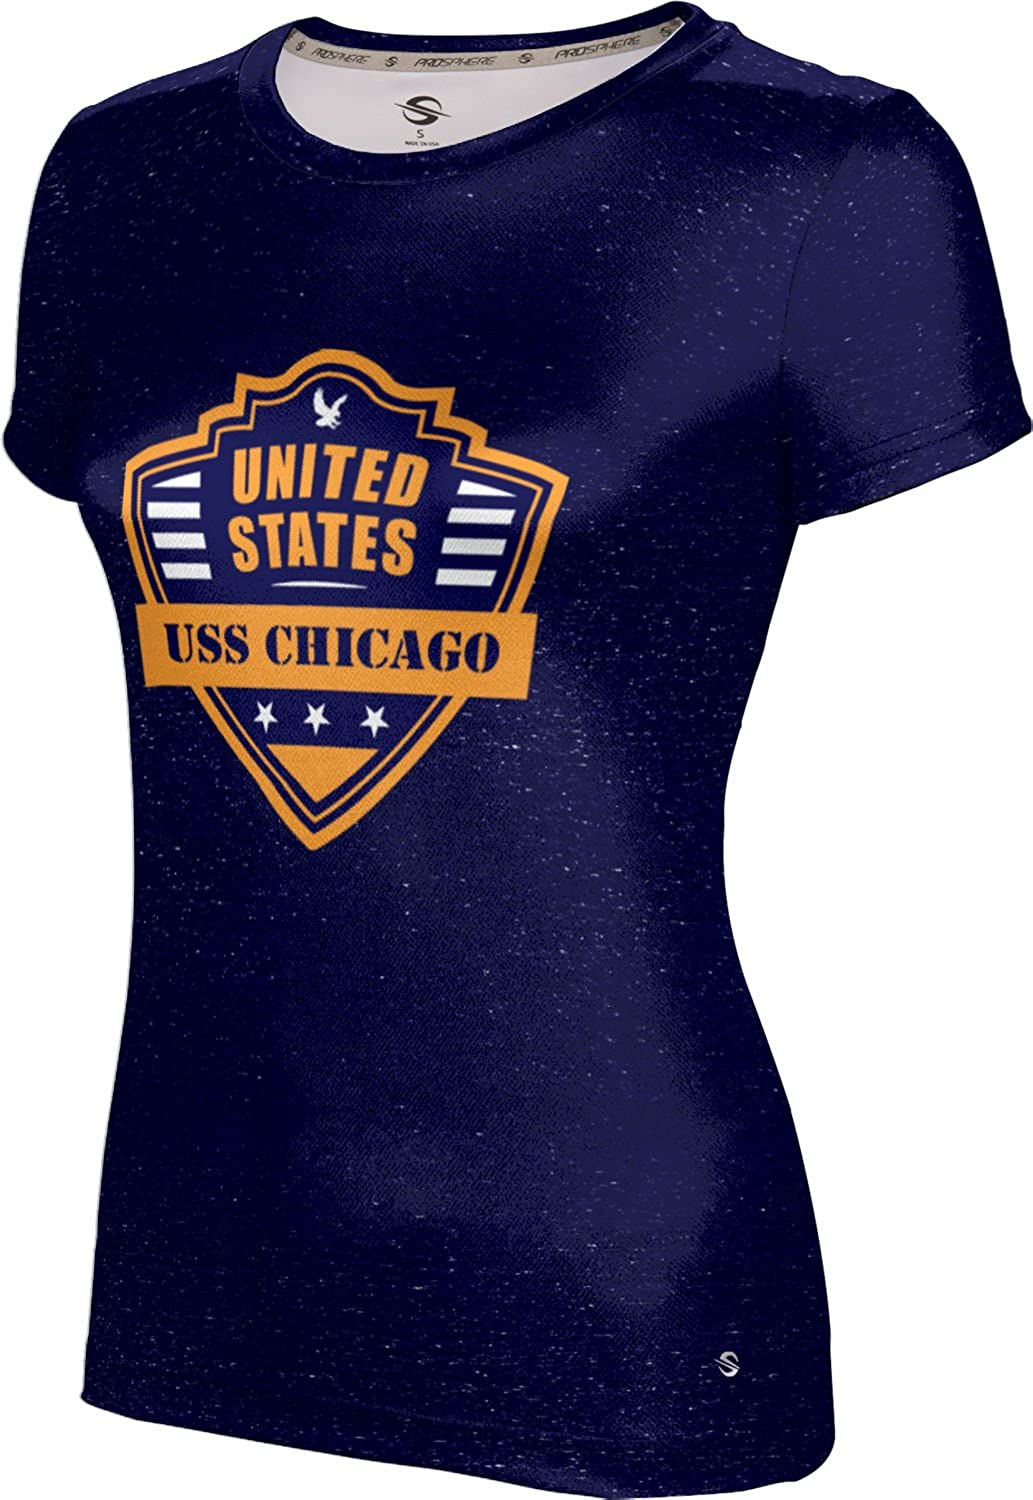 ProSphere Women's USS Chicago Military Heather Tech Tee